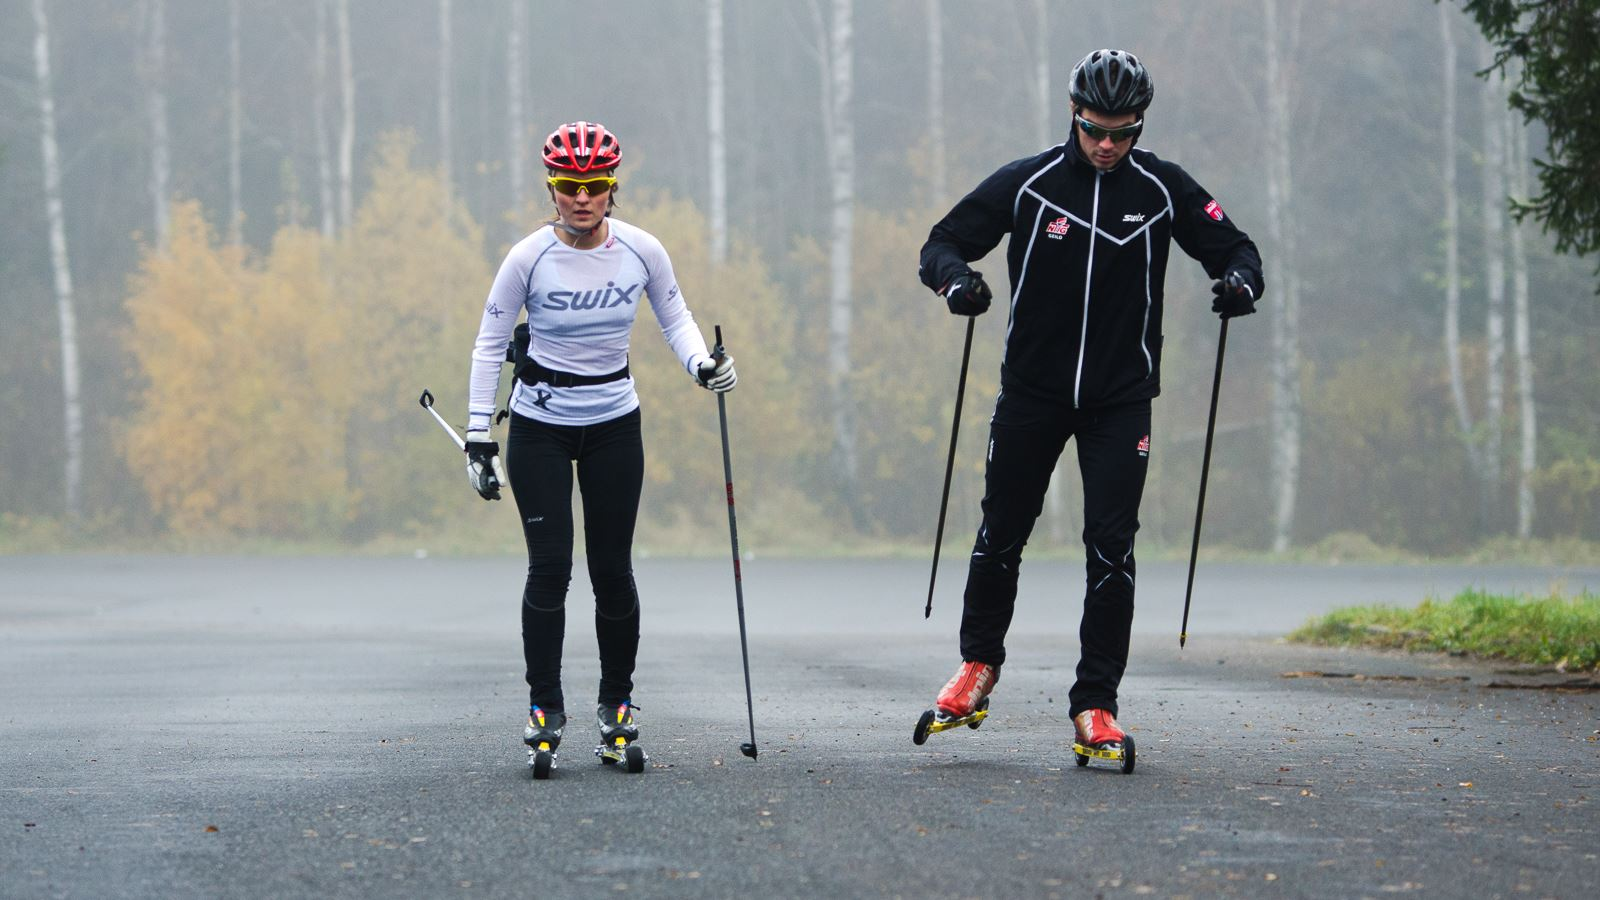 Athletes on rollerskis in foggy forest